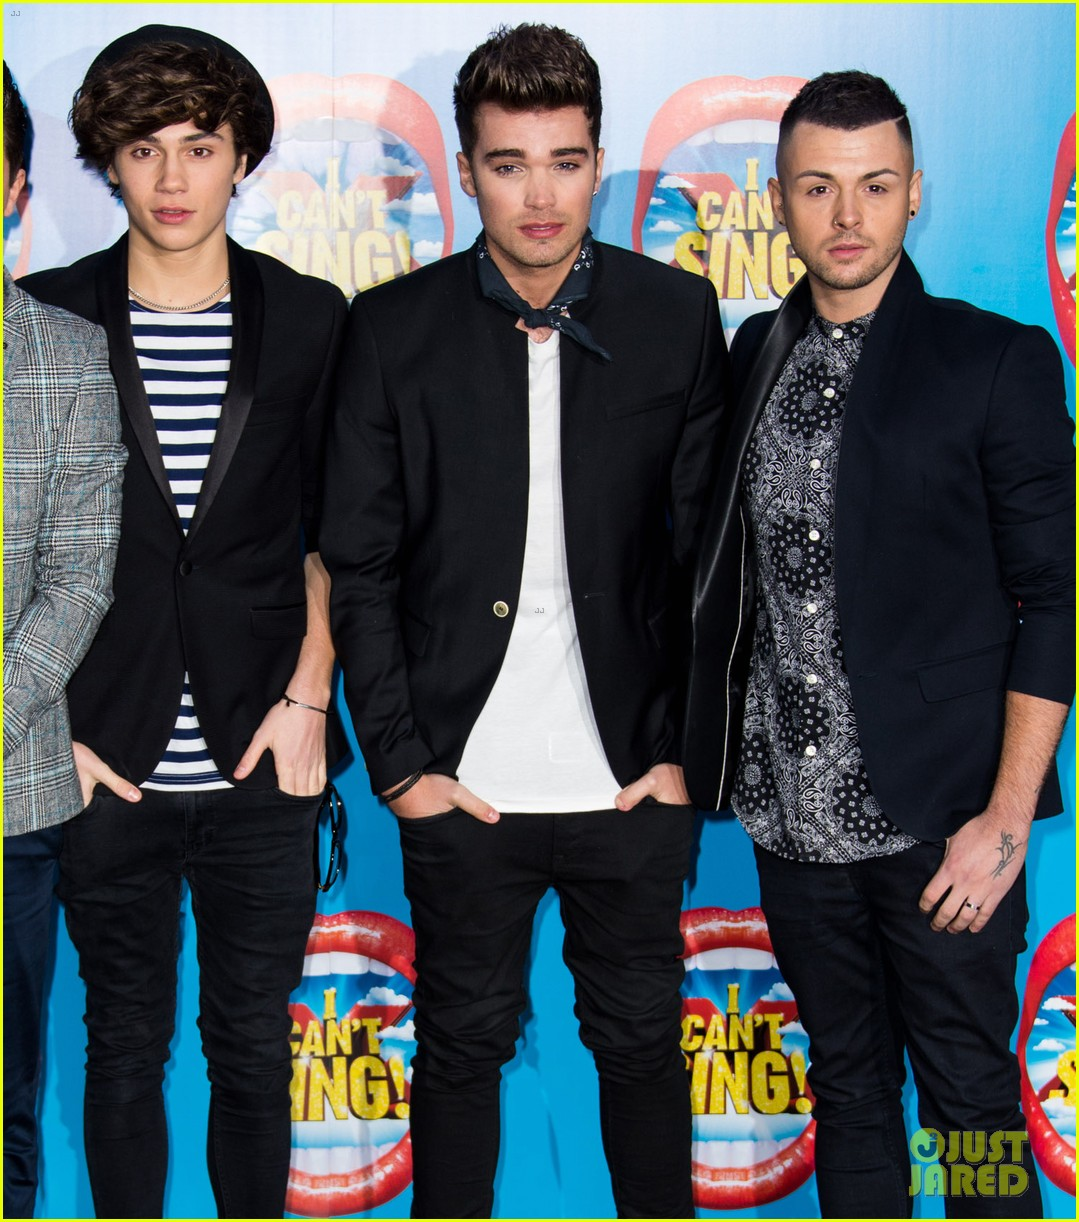 union j show their support for x factor musical i cant sing 10